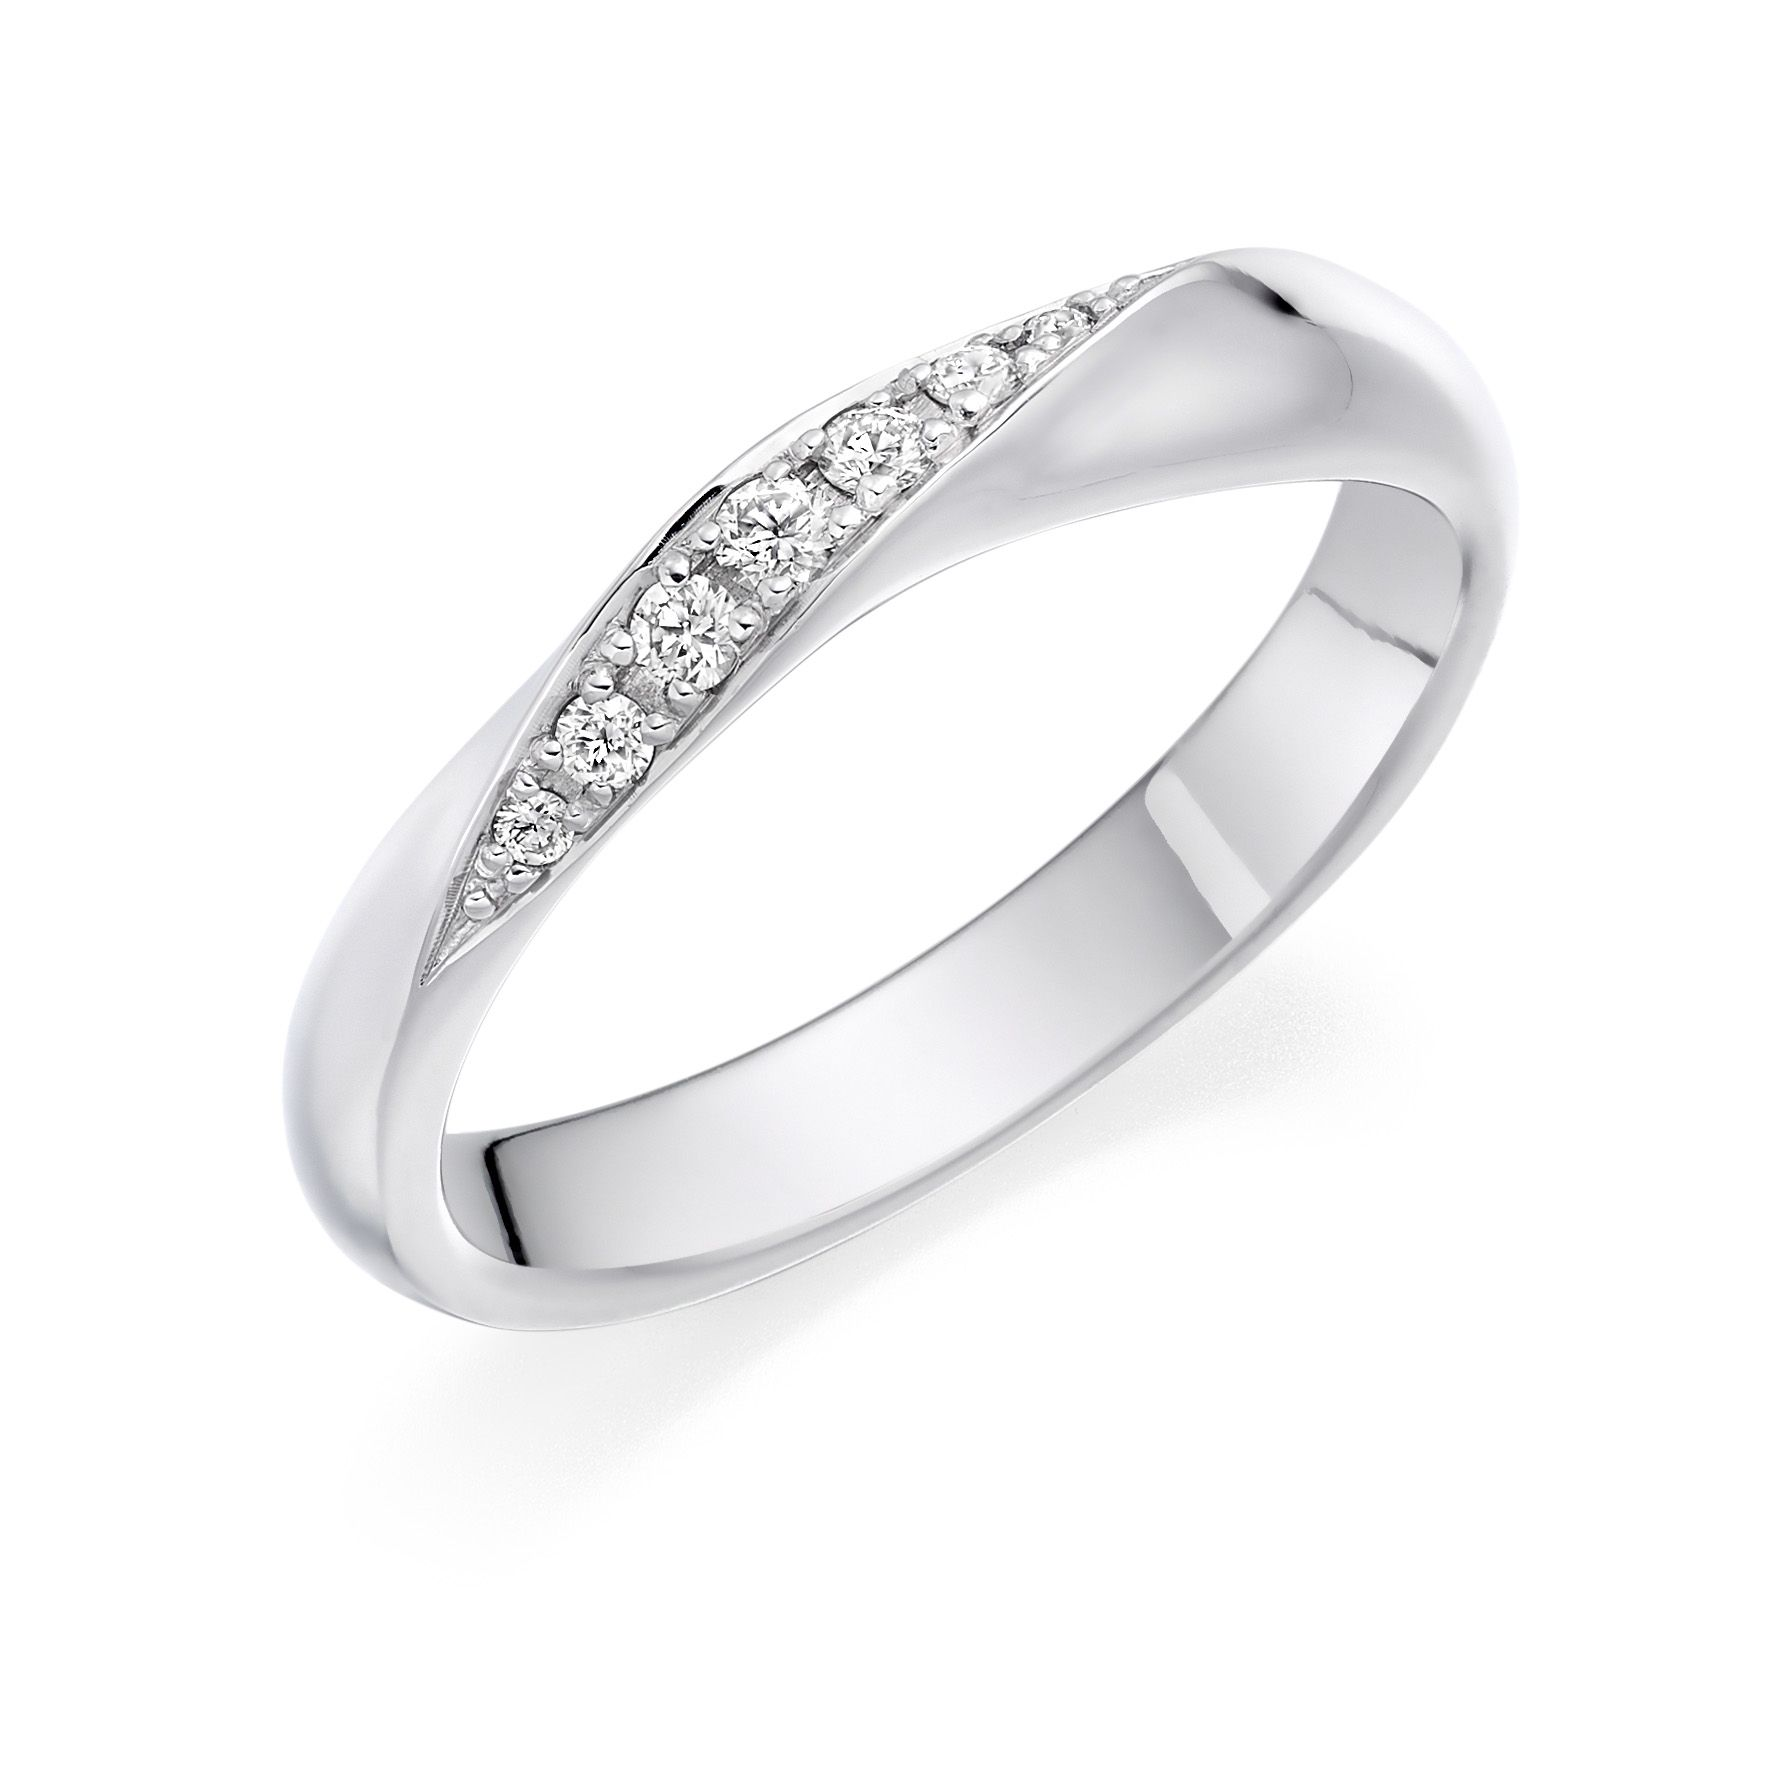 In Partnership With A Gerstner A Member Of The Prestigious Responsible Jewellery Council We Offer A Collection Of Wedding Rings T Wedding Rings Diamond Rings